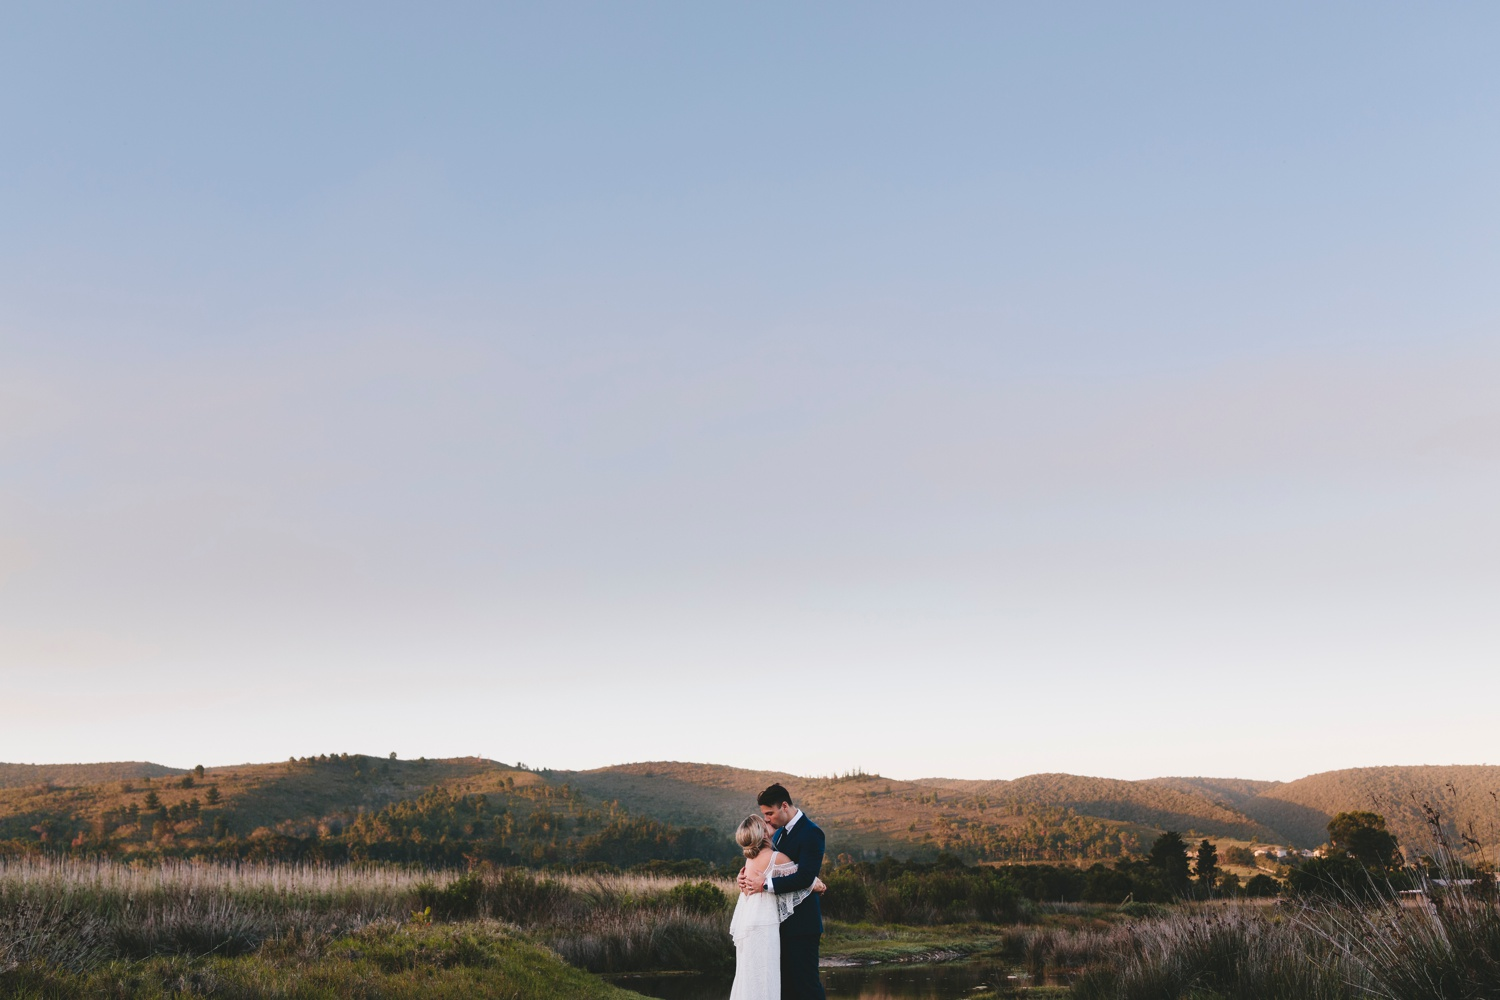 charlie_ray_photography_runaway_romance_elopement_emily_moon_plett_simple_boho_wedding_south_africa_bohemium_0108.jpg